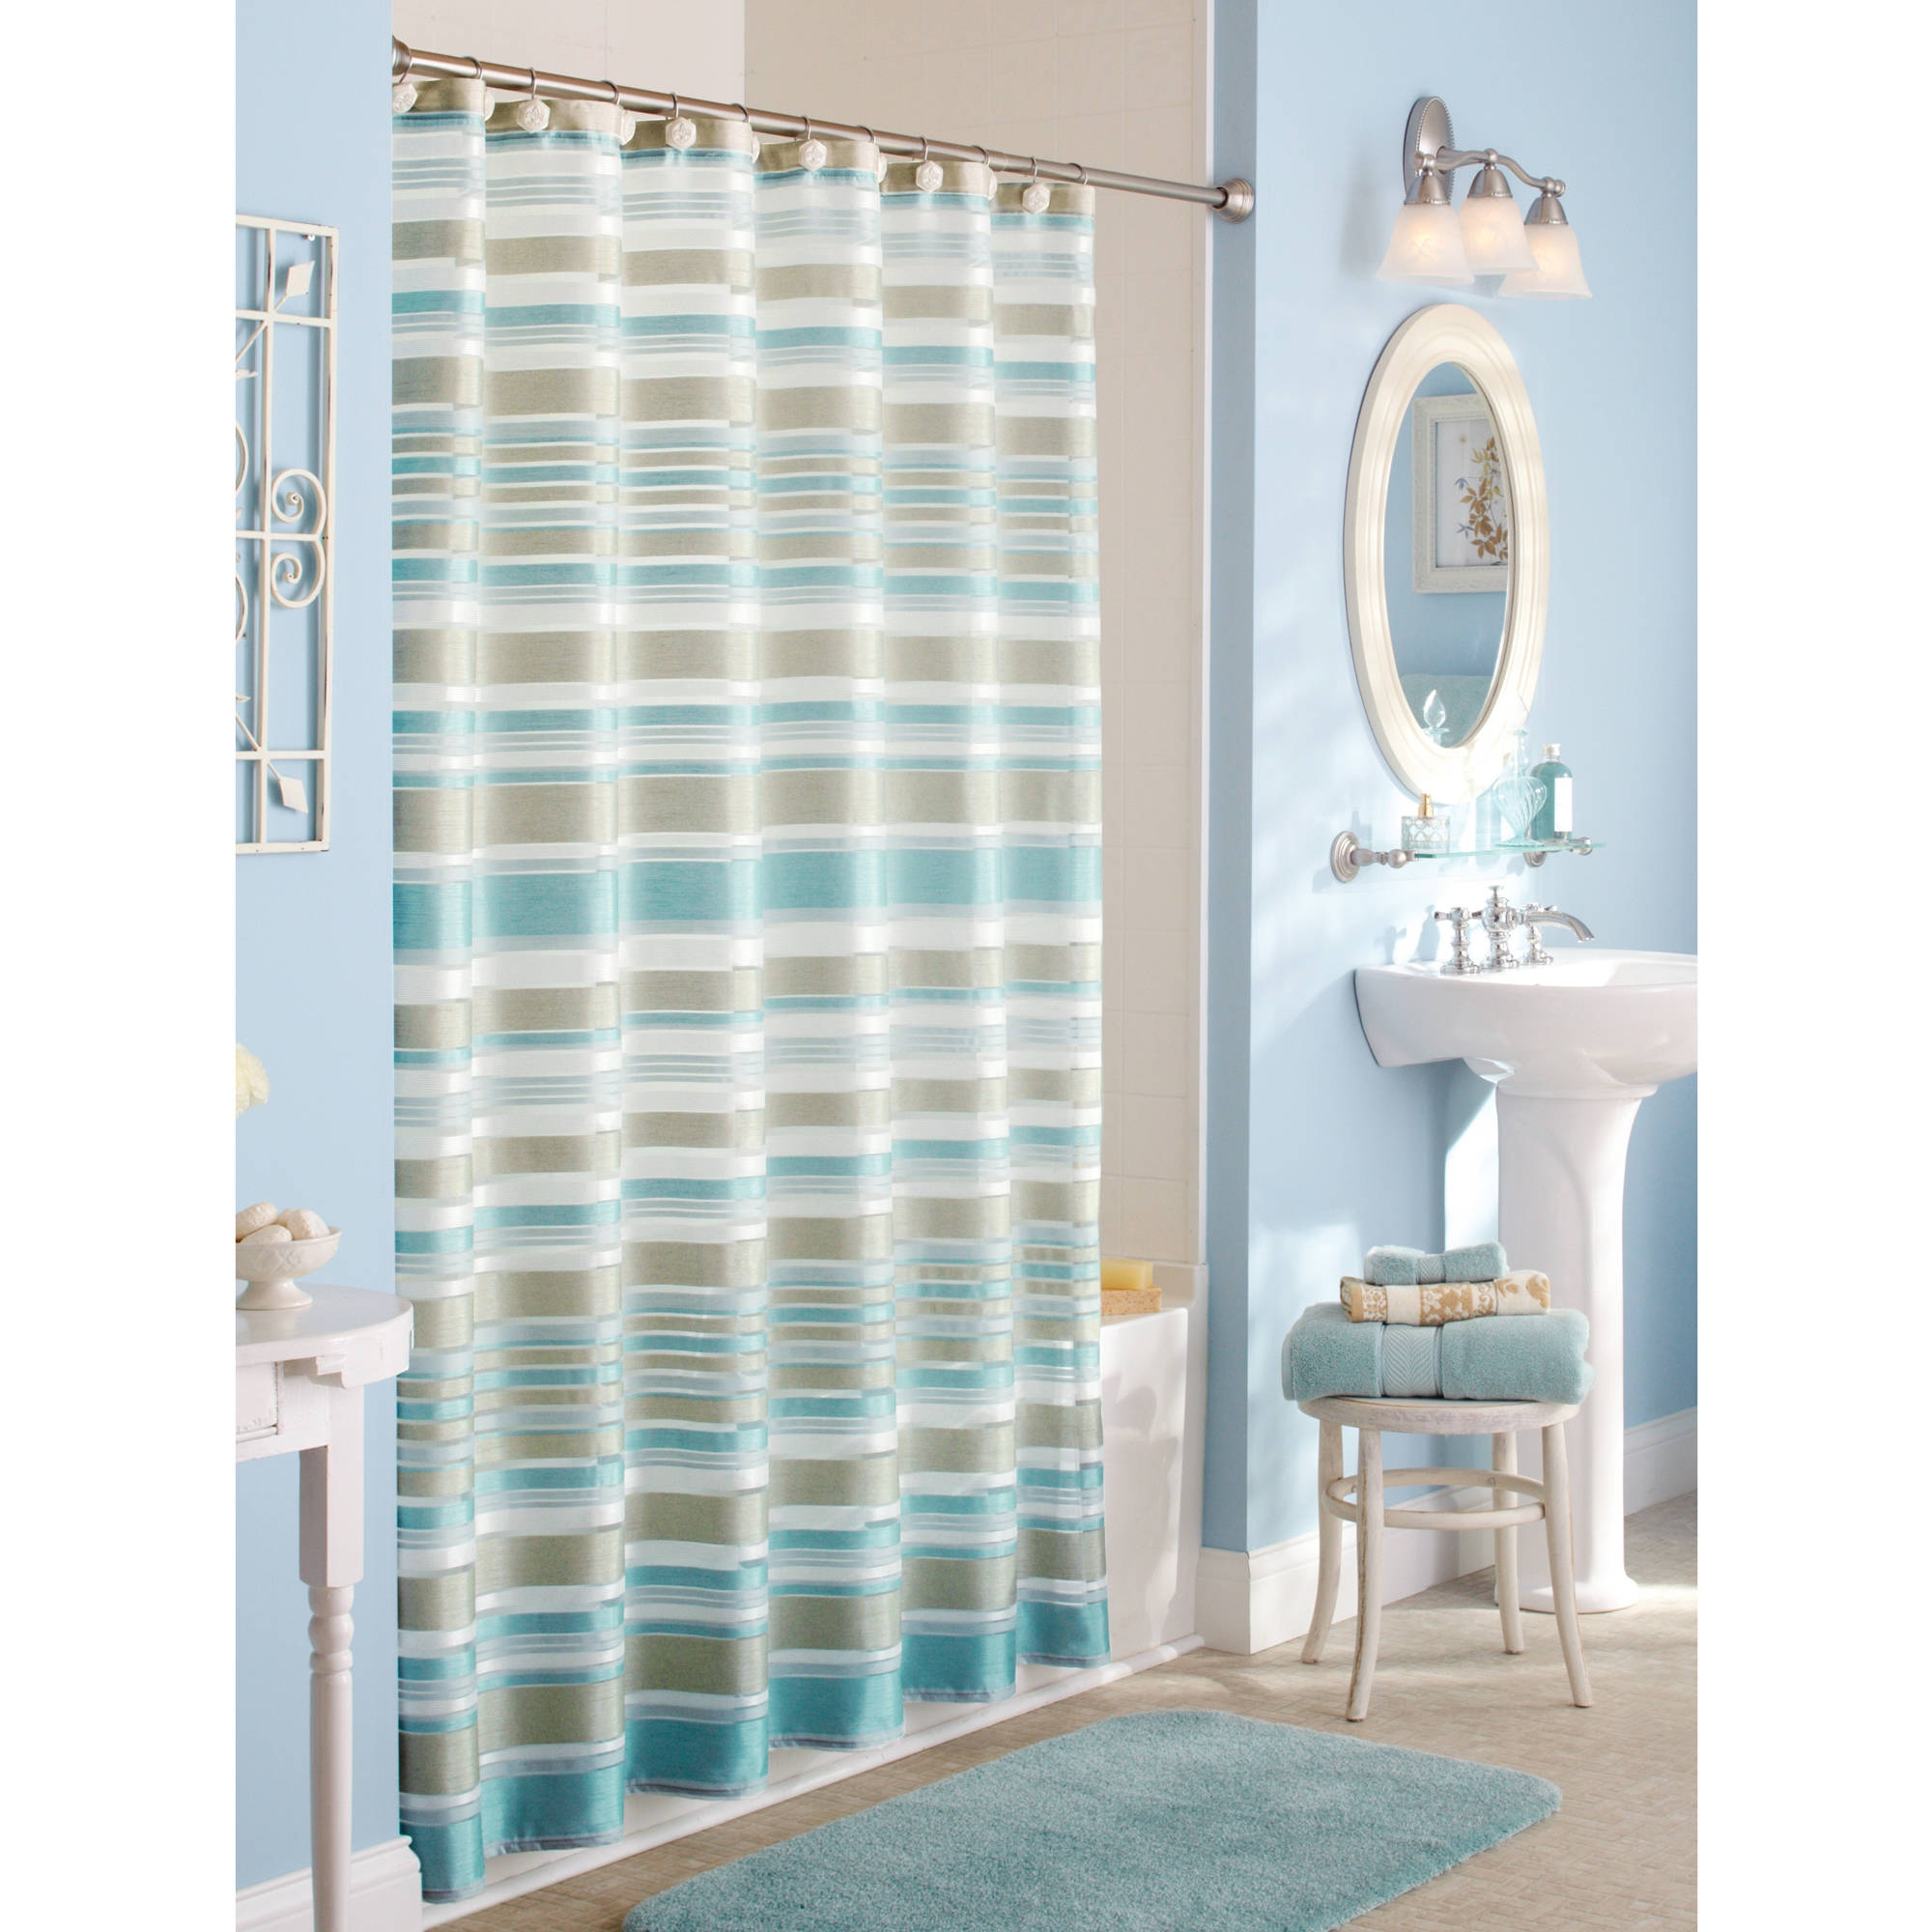 Light Blue Fabric Shower Curtain Liner Shower Curtain pertaining to sizing 2000 X 2000